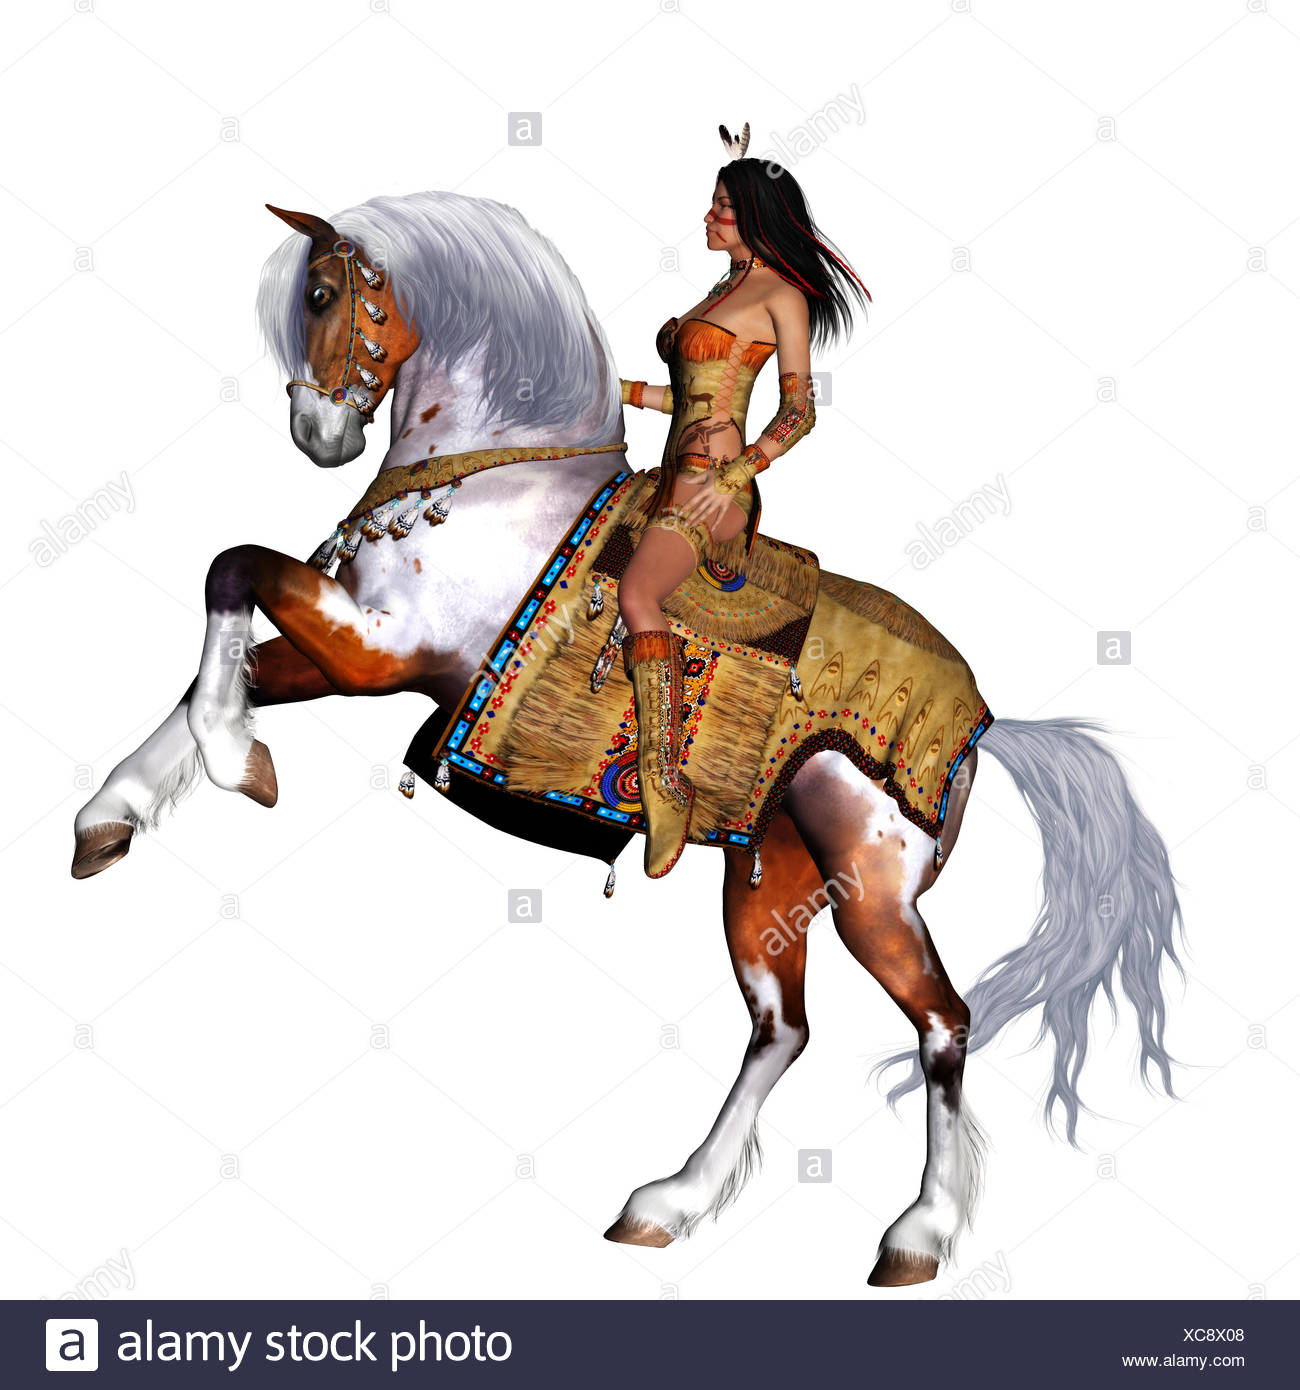 a native girl and her horse - isolated on white - Stock Image